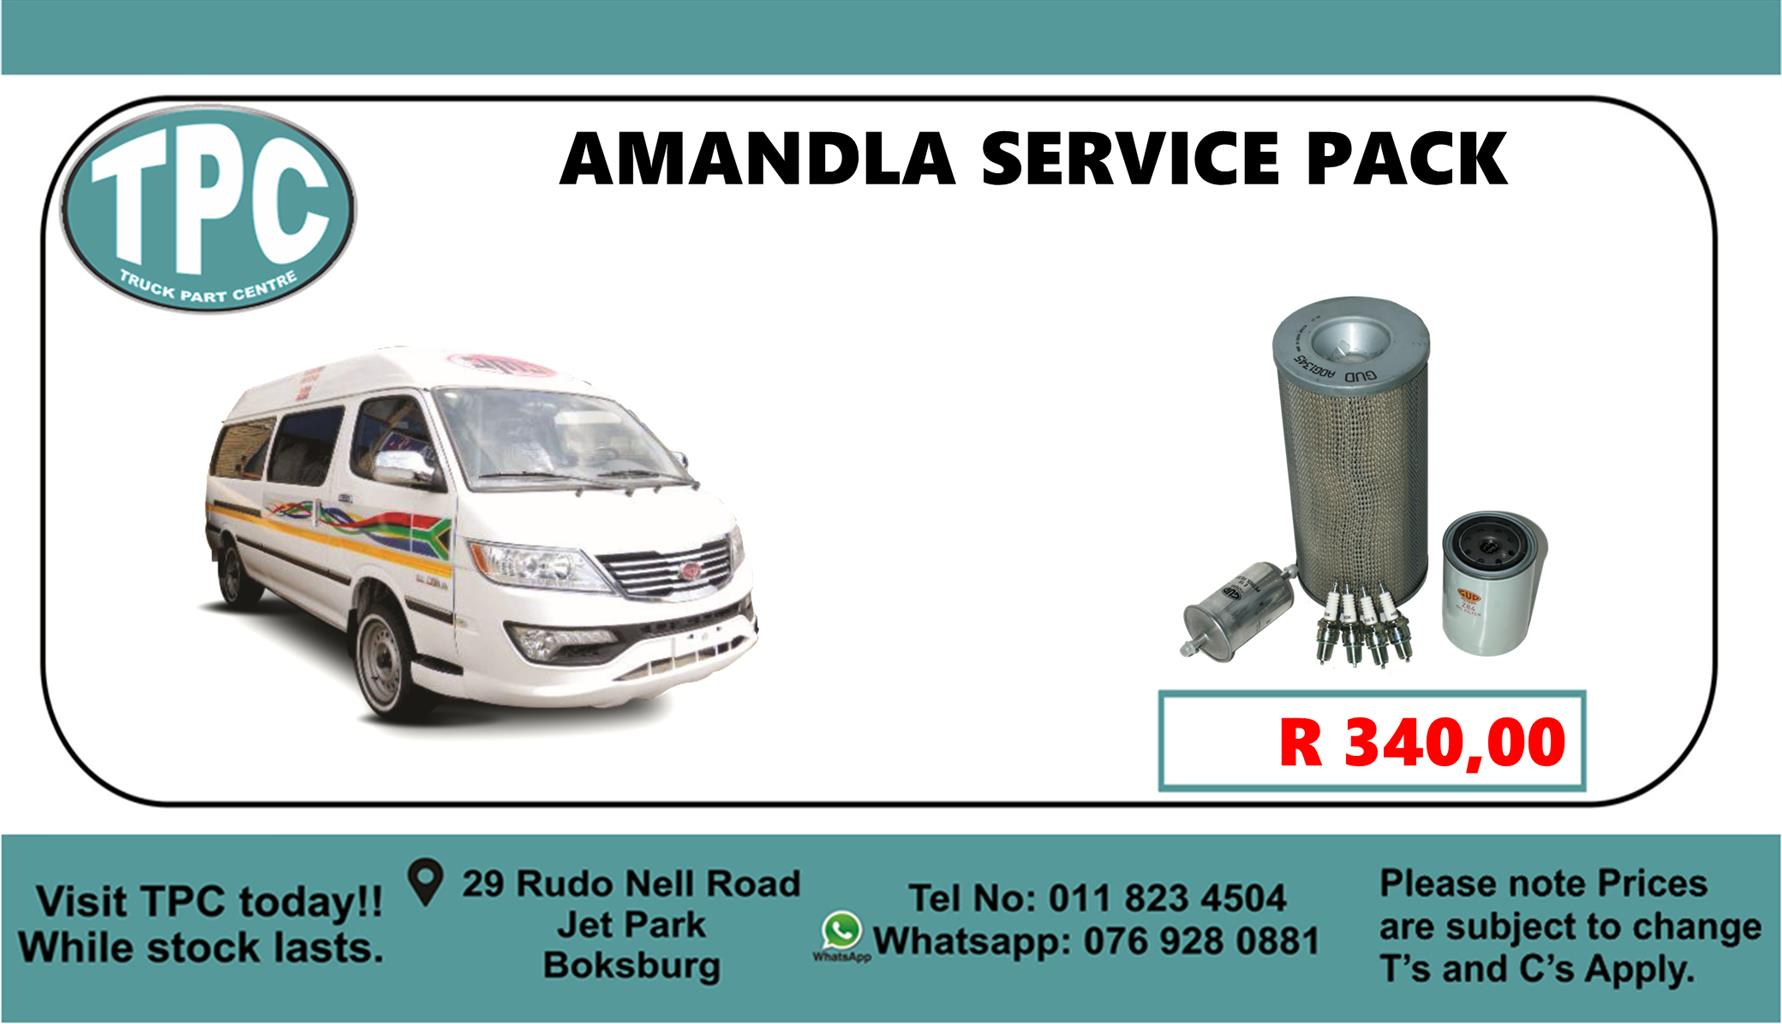 Amandla Service Pack - For Sale at TPC.